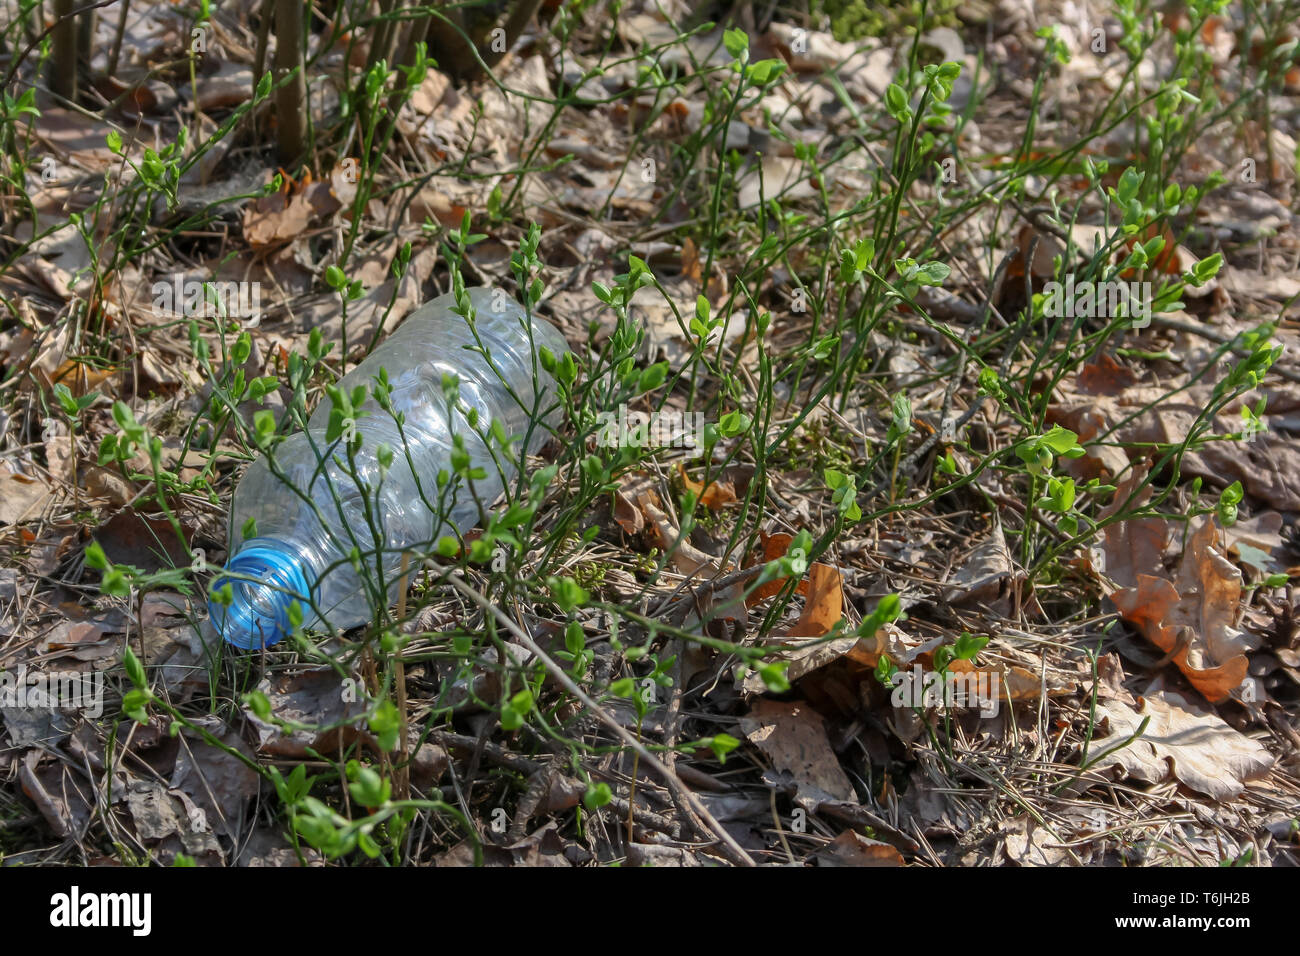 A carelessly throw away plastic water bottle nestled in the foliage litters a forest path - Stock Image